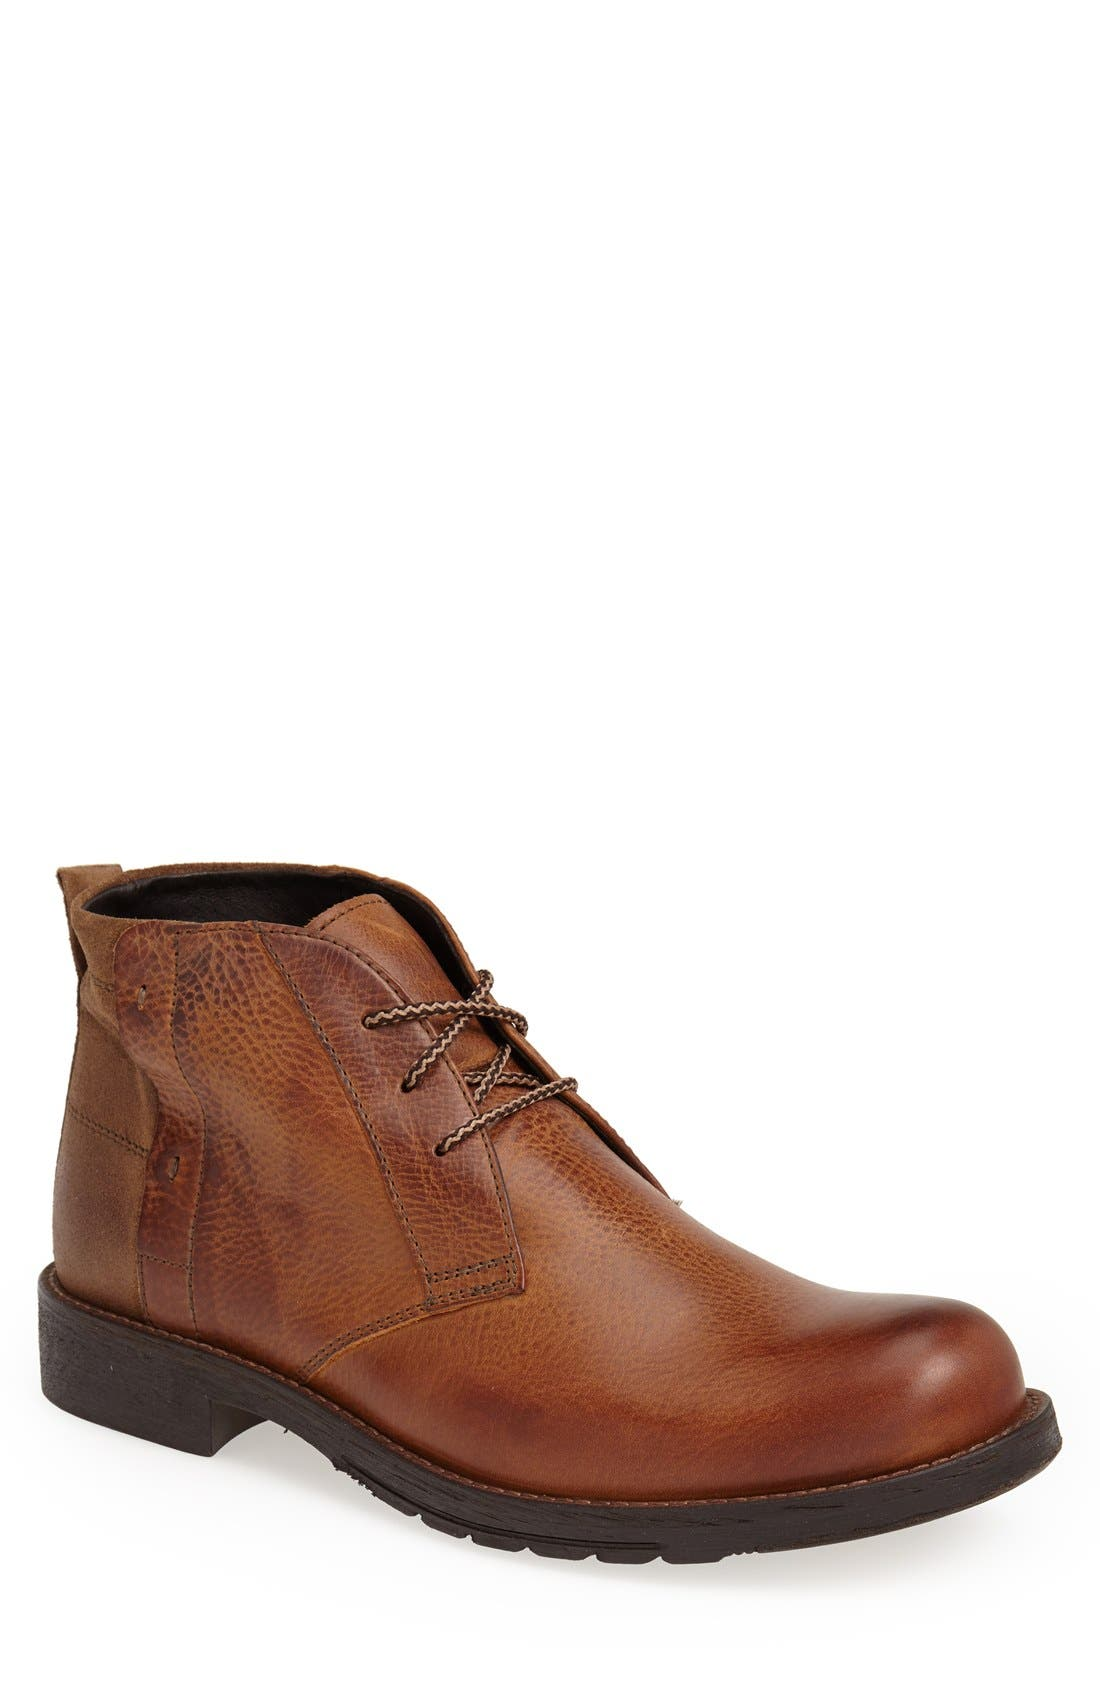 Main Image - J&M 1850 'Nordeman' Chukka Boot (Men)